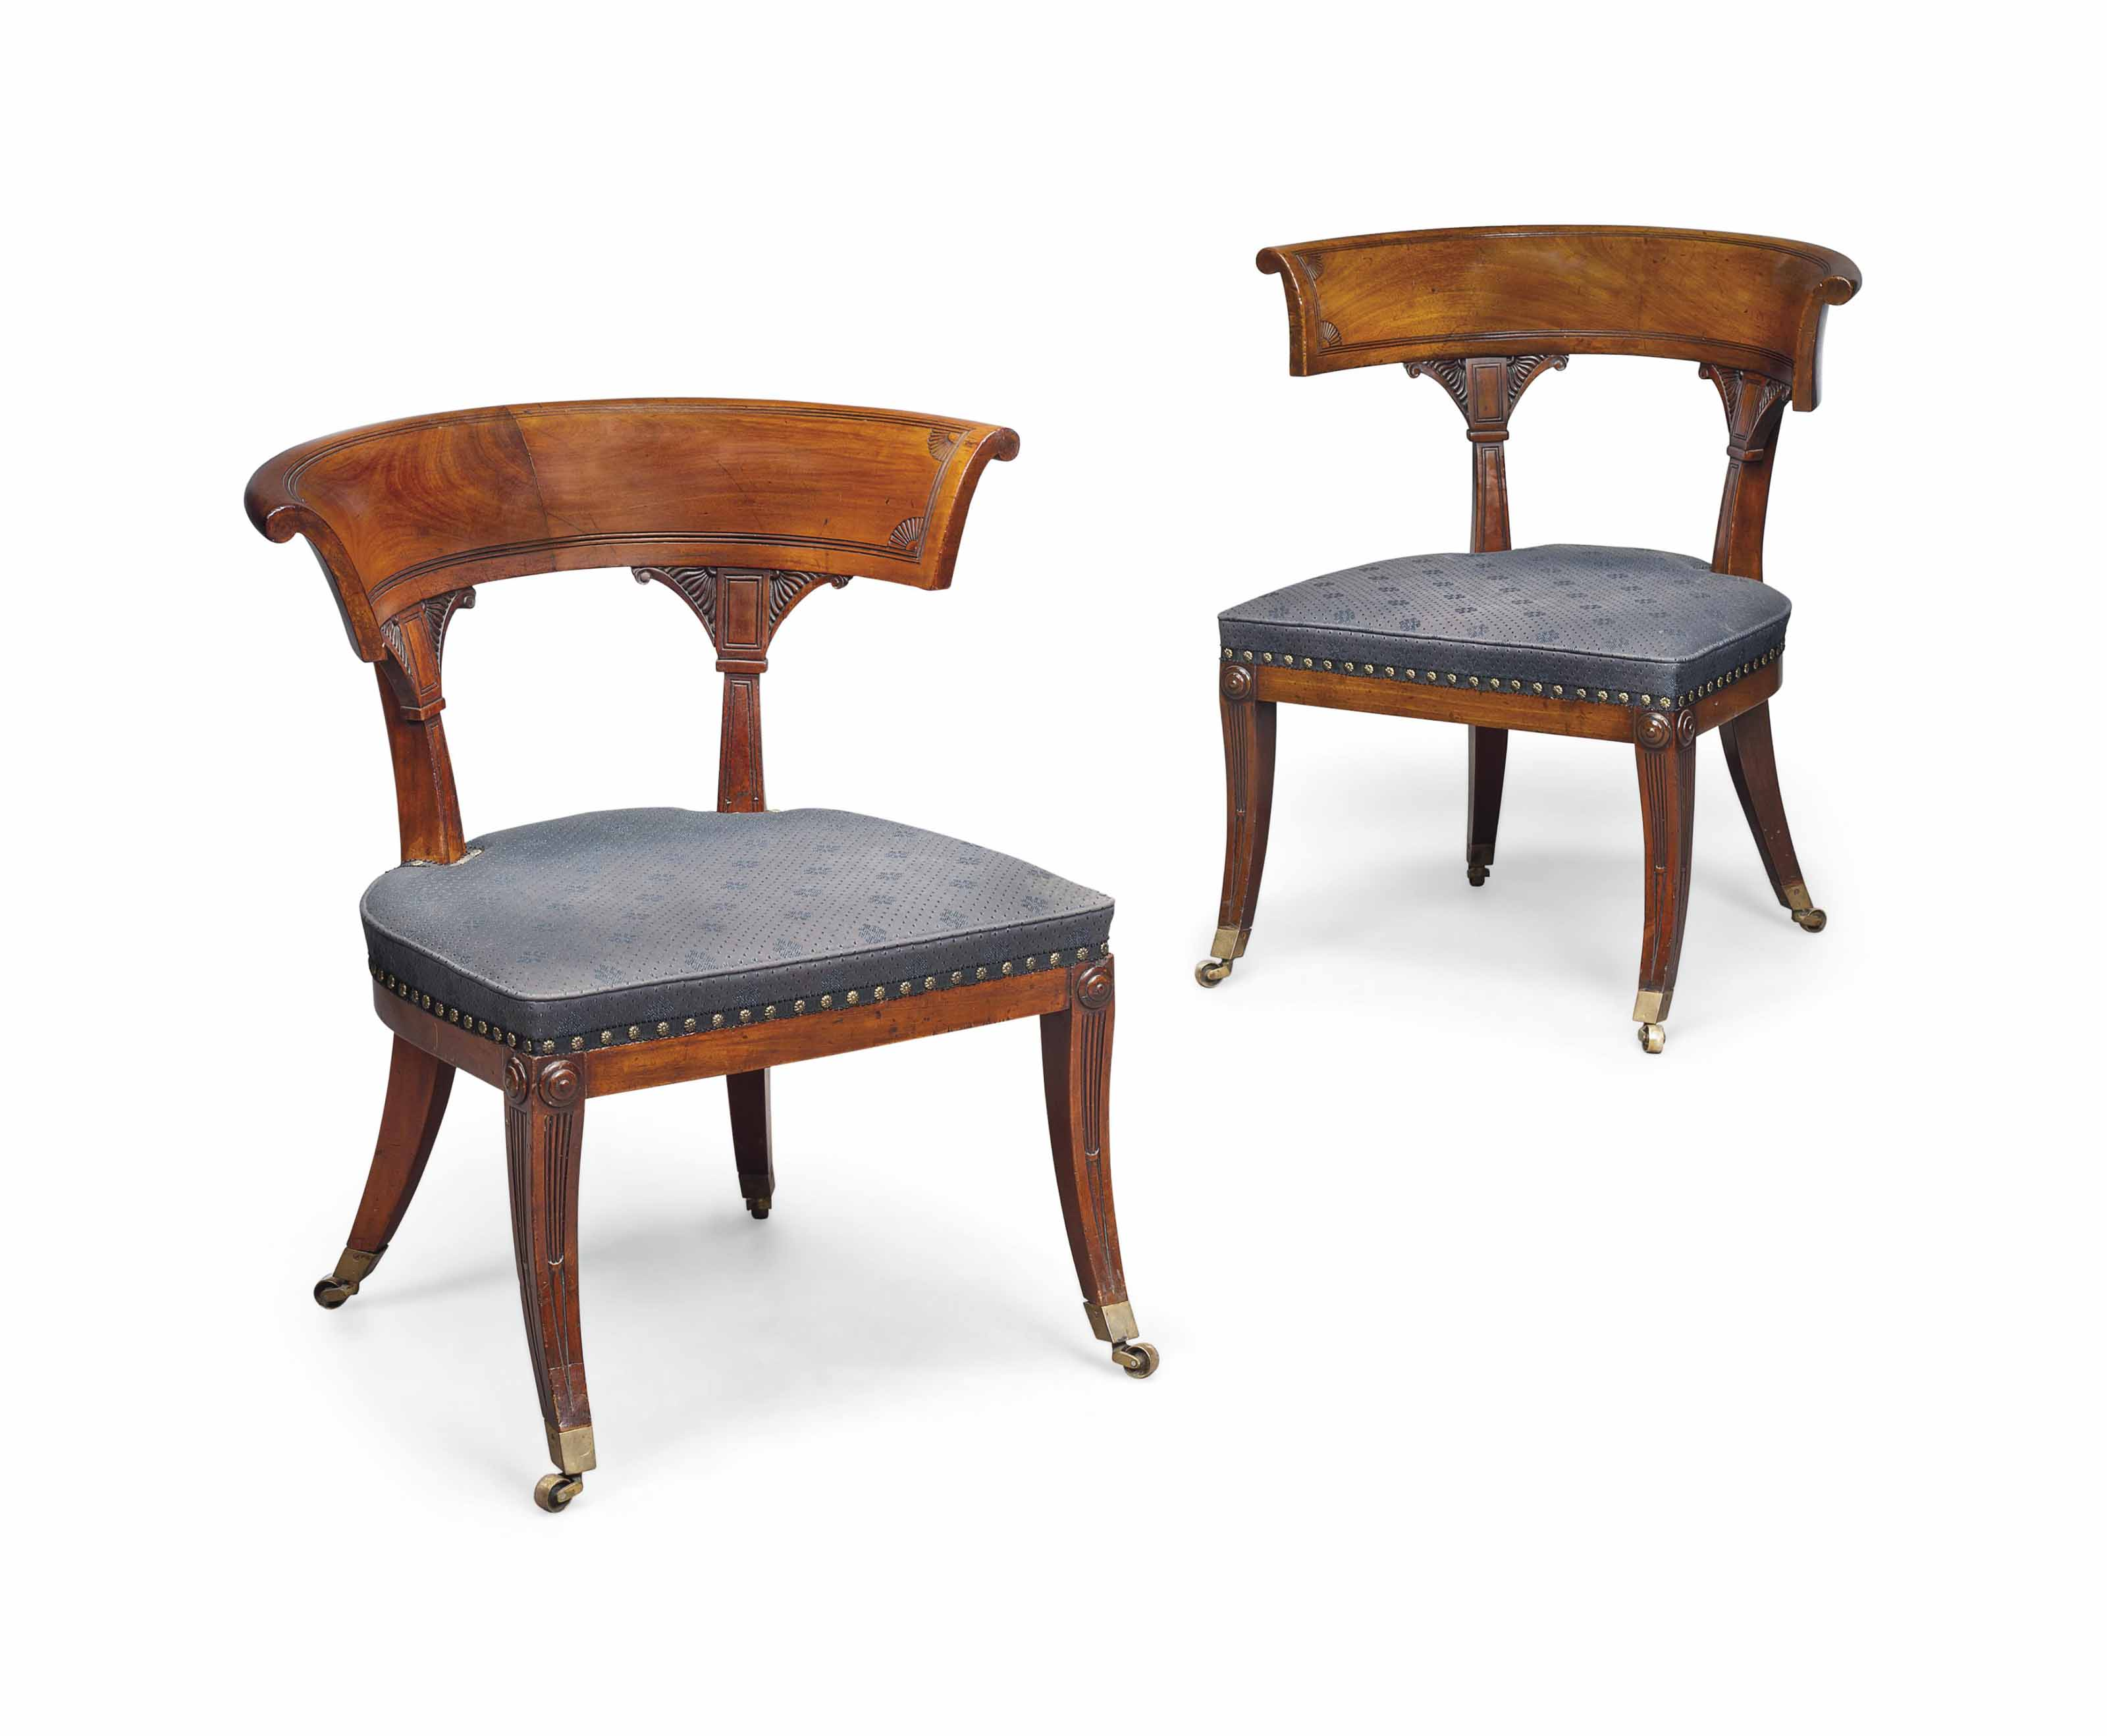 POSSIBLY SCOTTISH, ONE CHAIR REGENCY, THE OTHER OF A LATER DATE